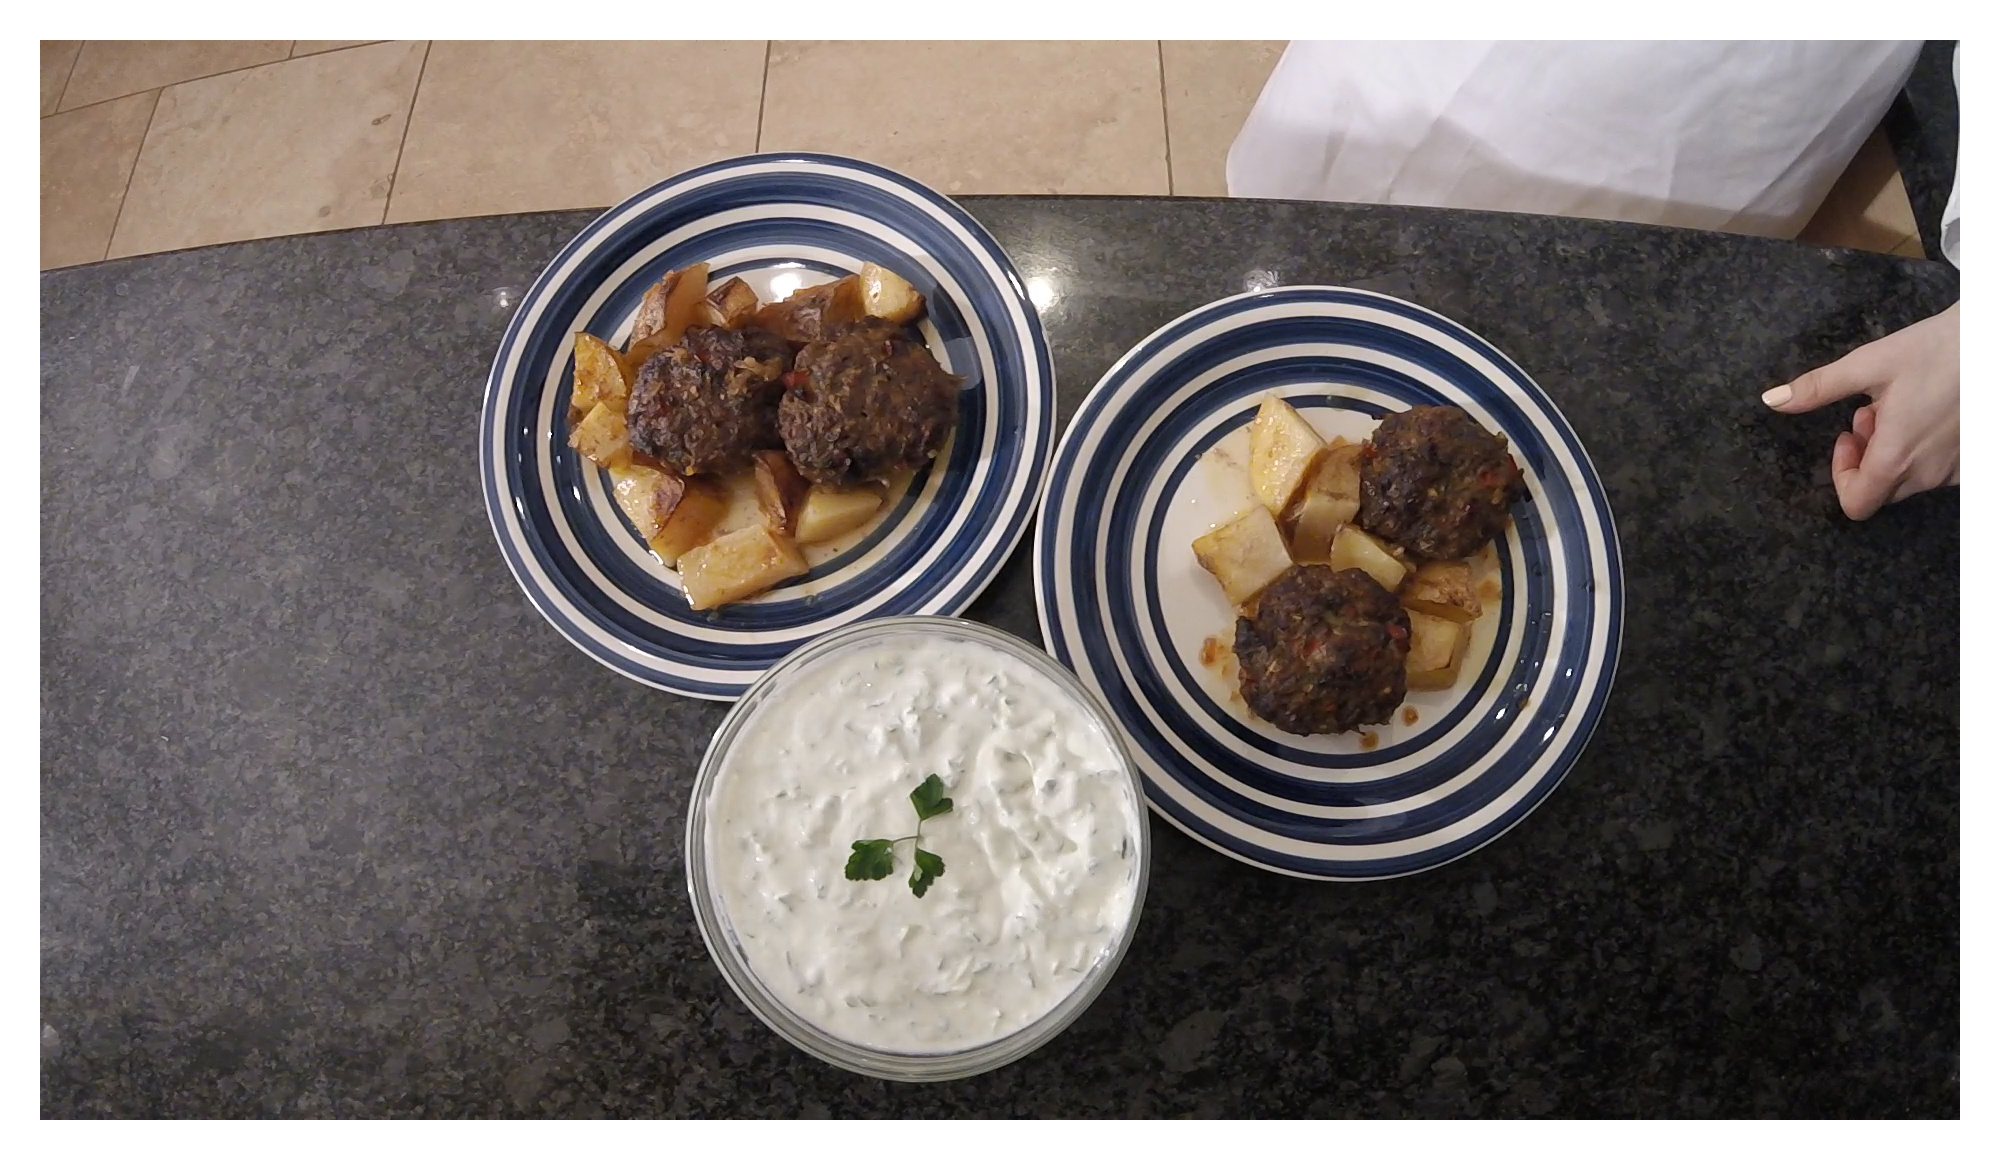 Episode 9 - Greek Burgers with Roast Potatoes